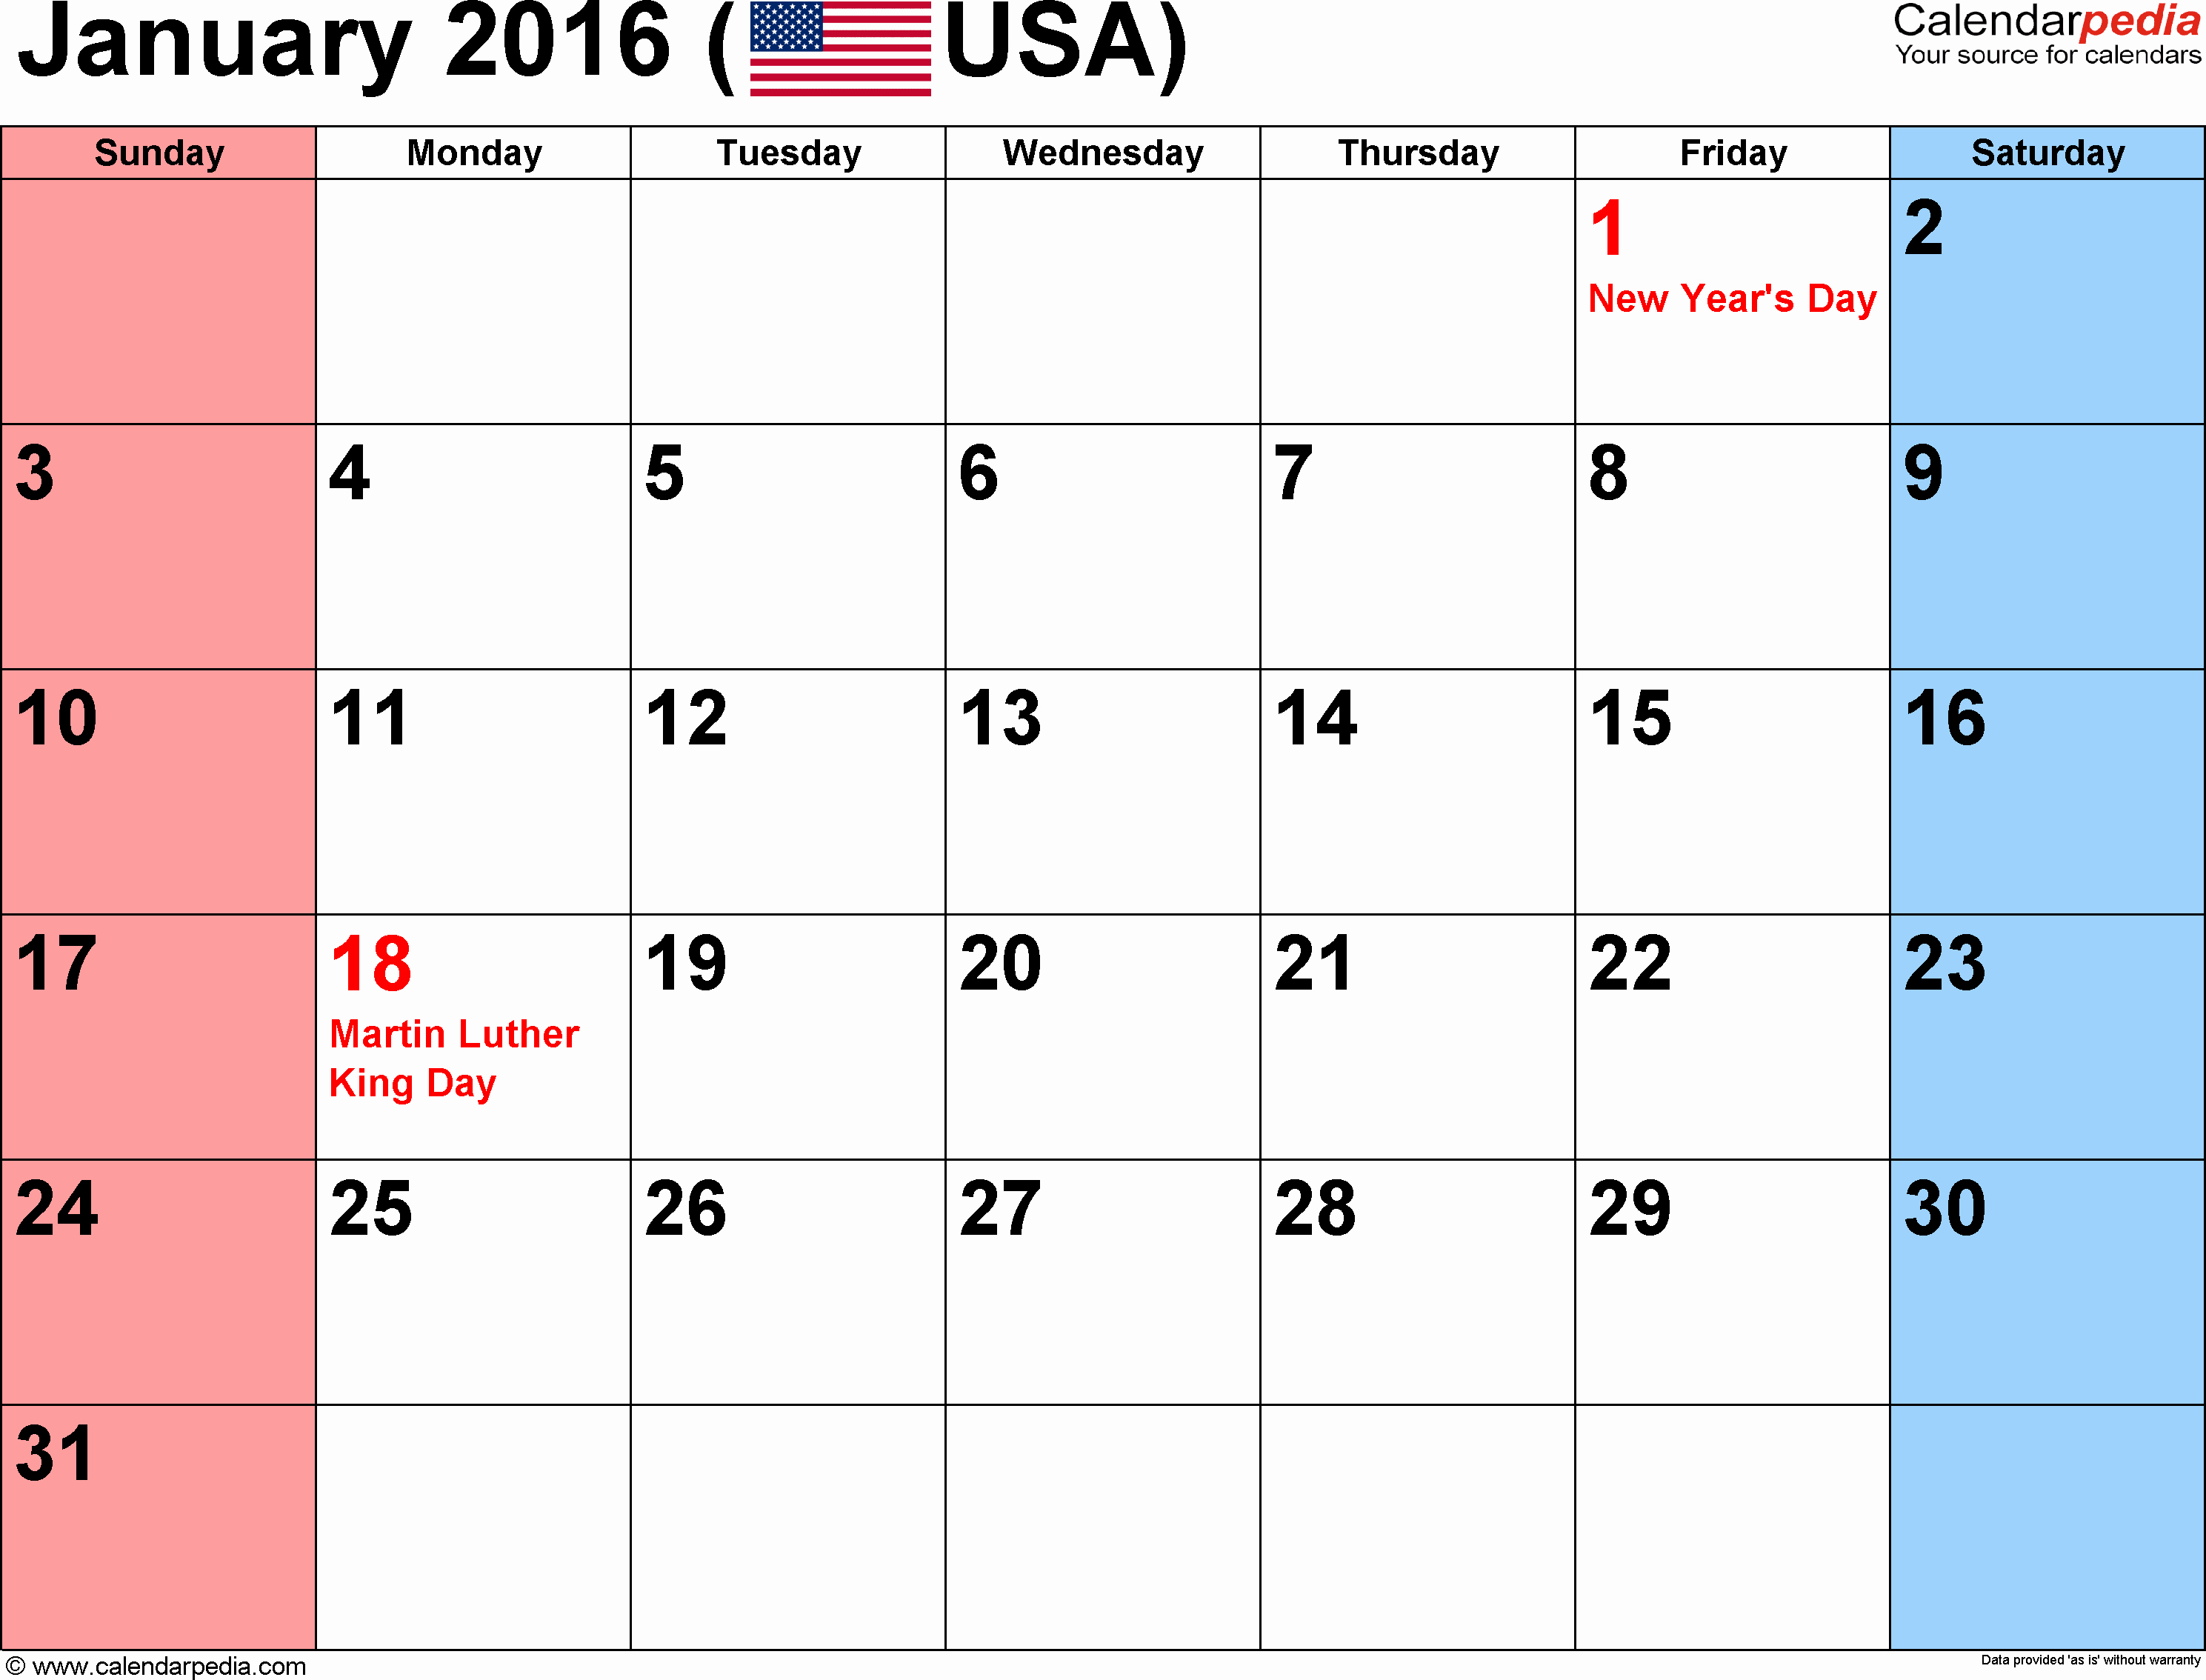 January 2016 Calendar Template Word Awesome January 2016 Calendars for Word Excel & Pdf